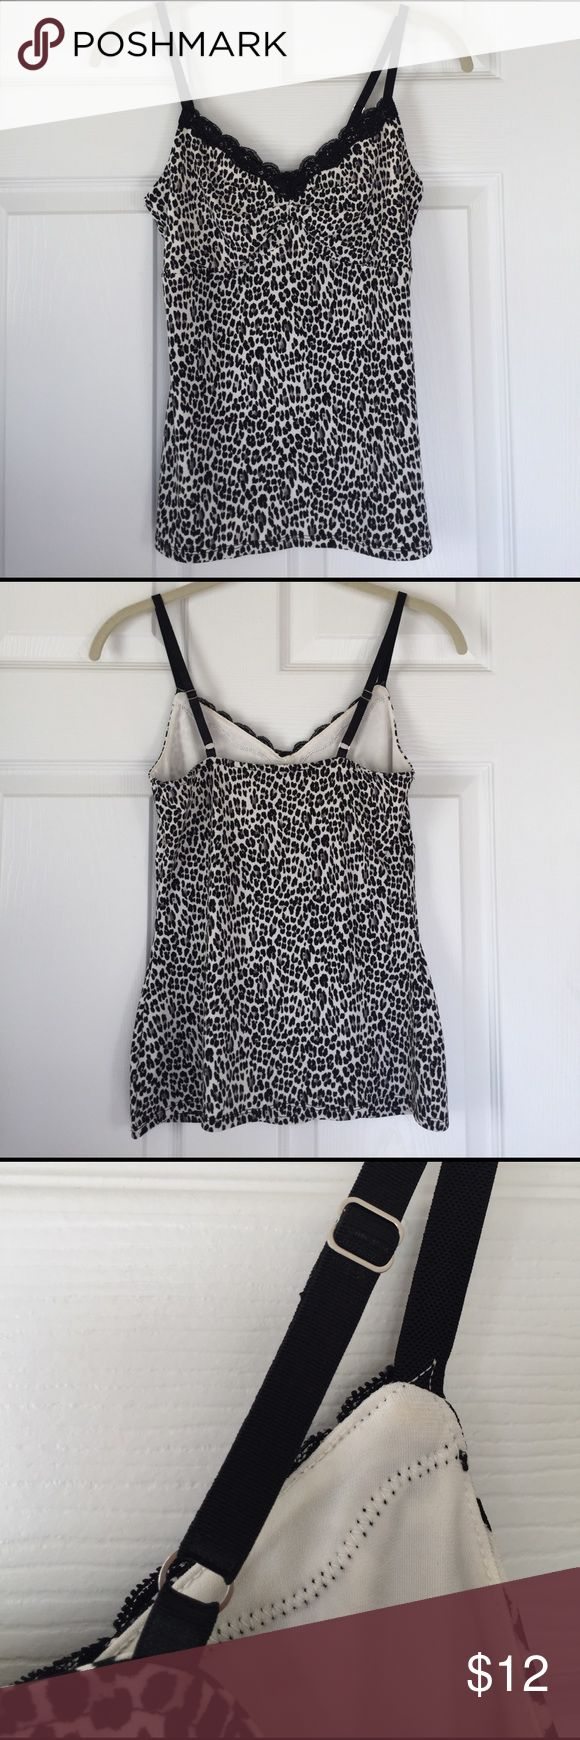 White House Black Market Animal Print Cami WHBM stretch cami has a black & gray animal print on a white ground and black lace trim. Adjustable straps, silky feel. Perfect under a cardi or even a denim jacket. Worn once if at all so still like new. Hand wash. White House Black Market Tops Camisoles